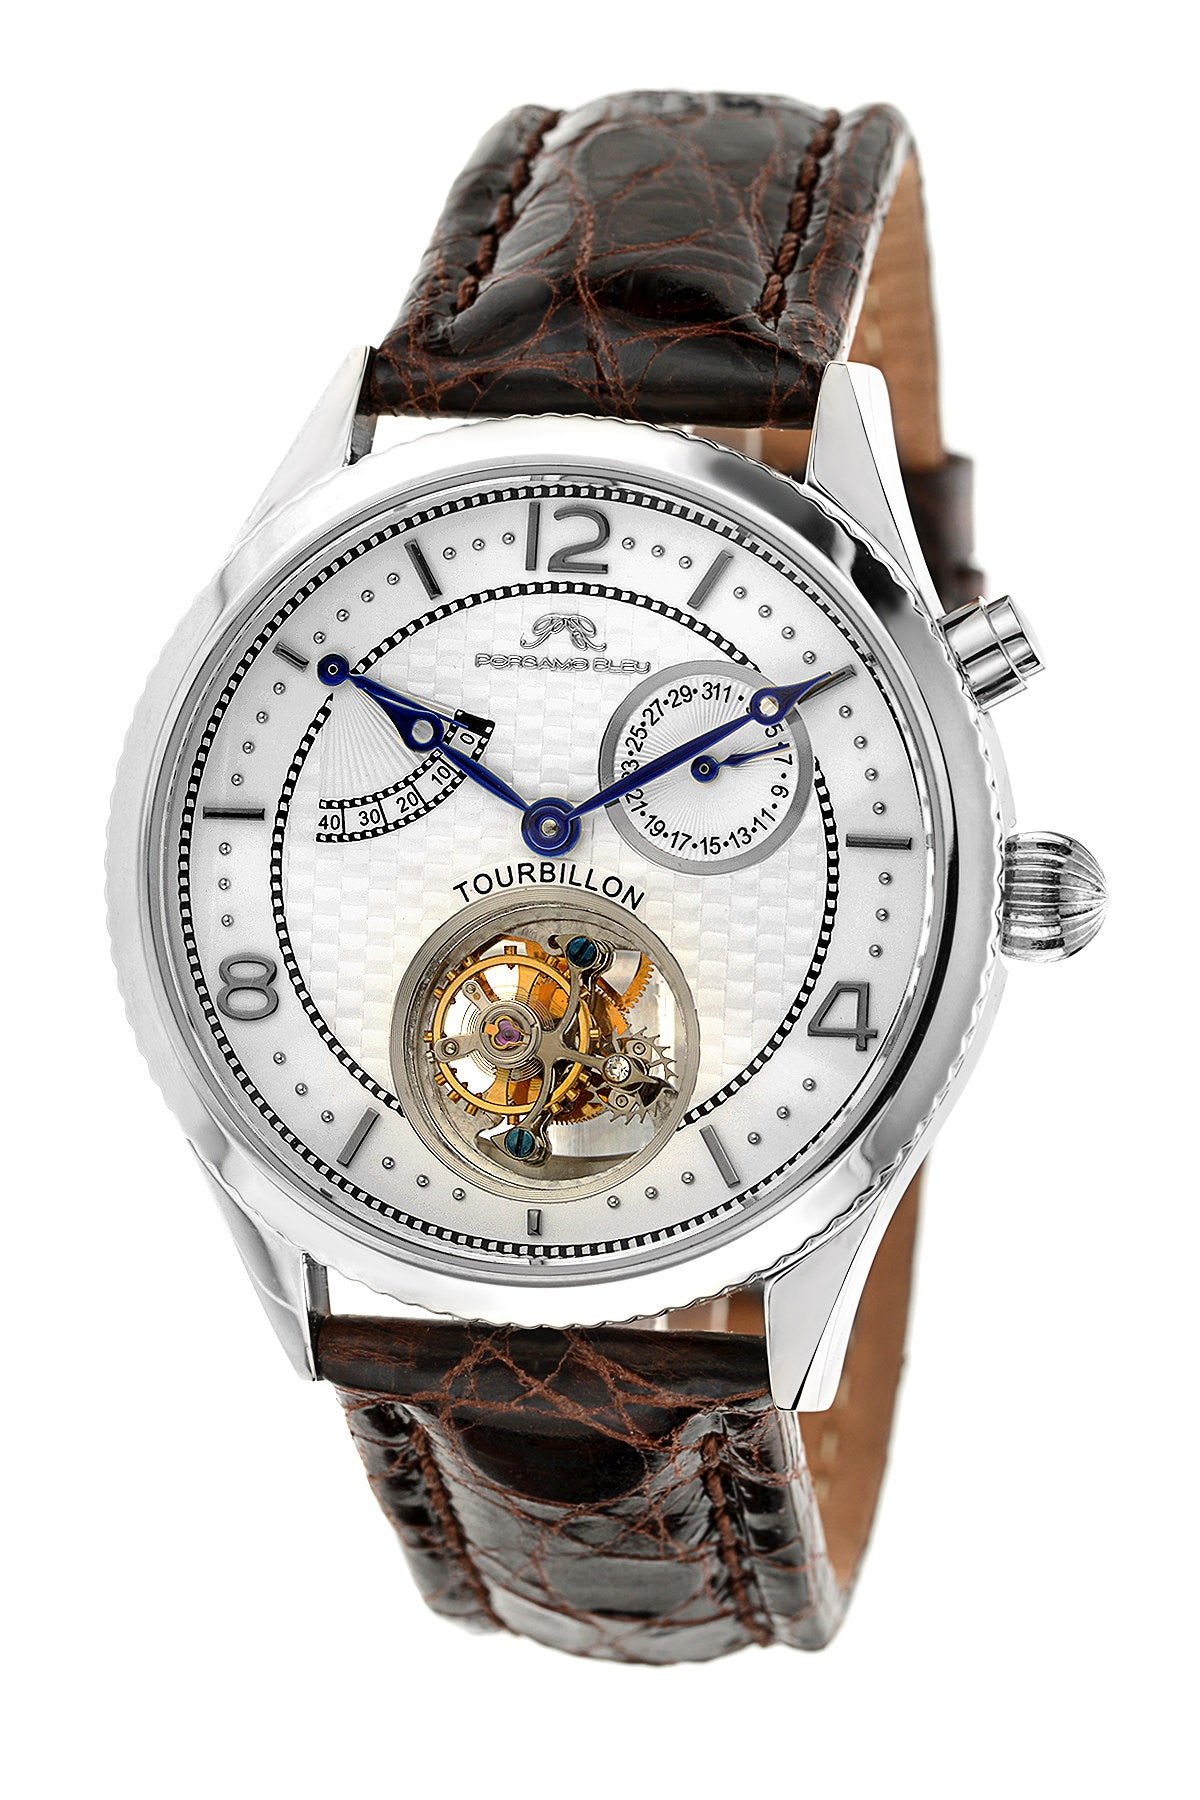 Porsamo Bleu Tourbillon men's luxury watch, genuine leather band, silver, white, brown 661ATBL